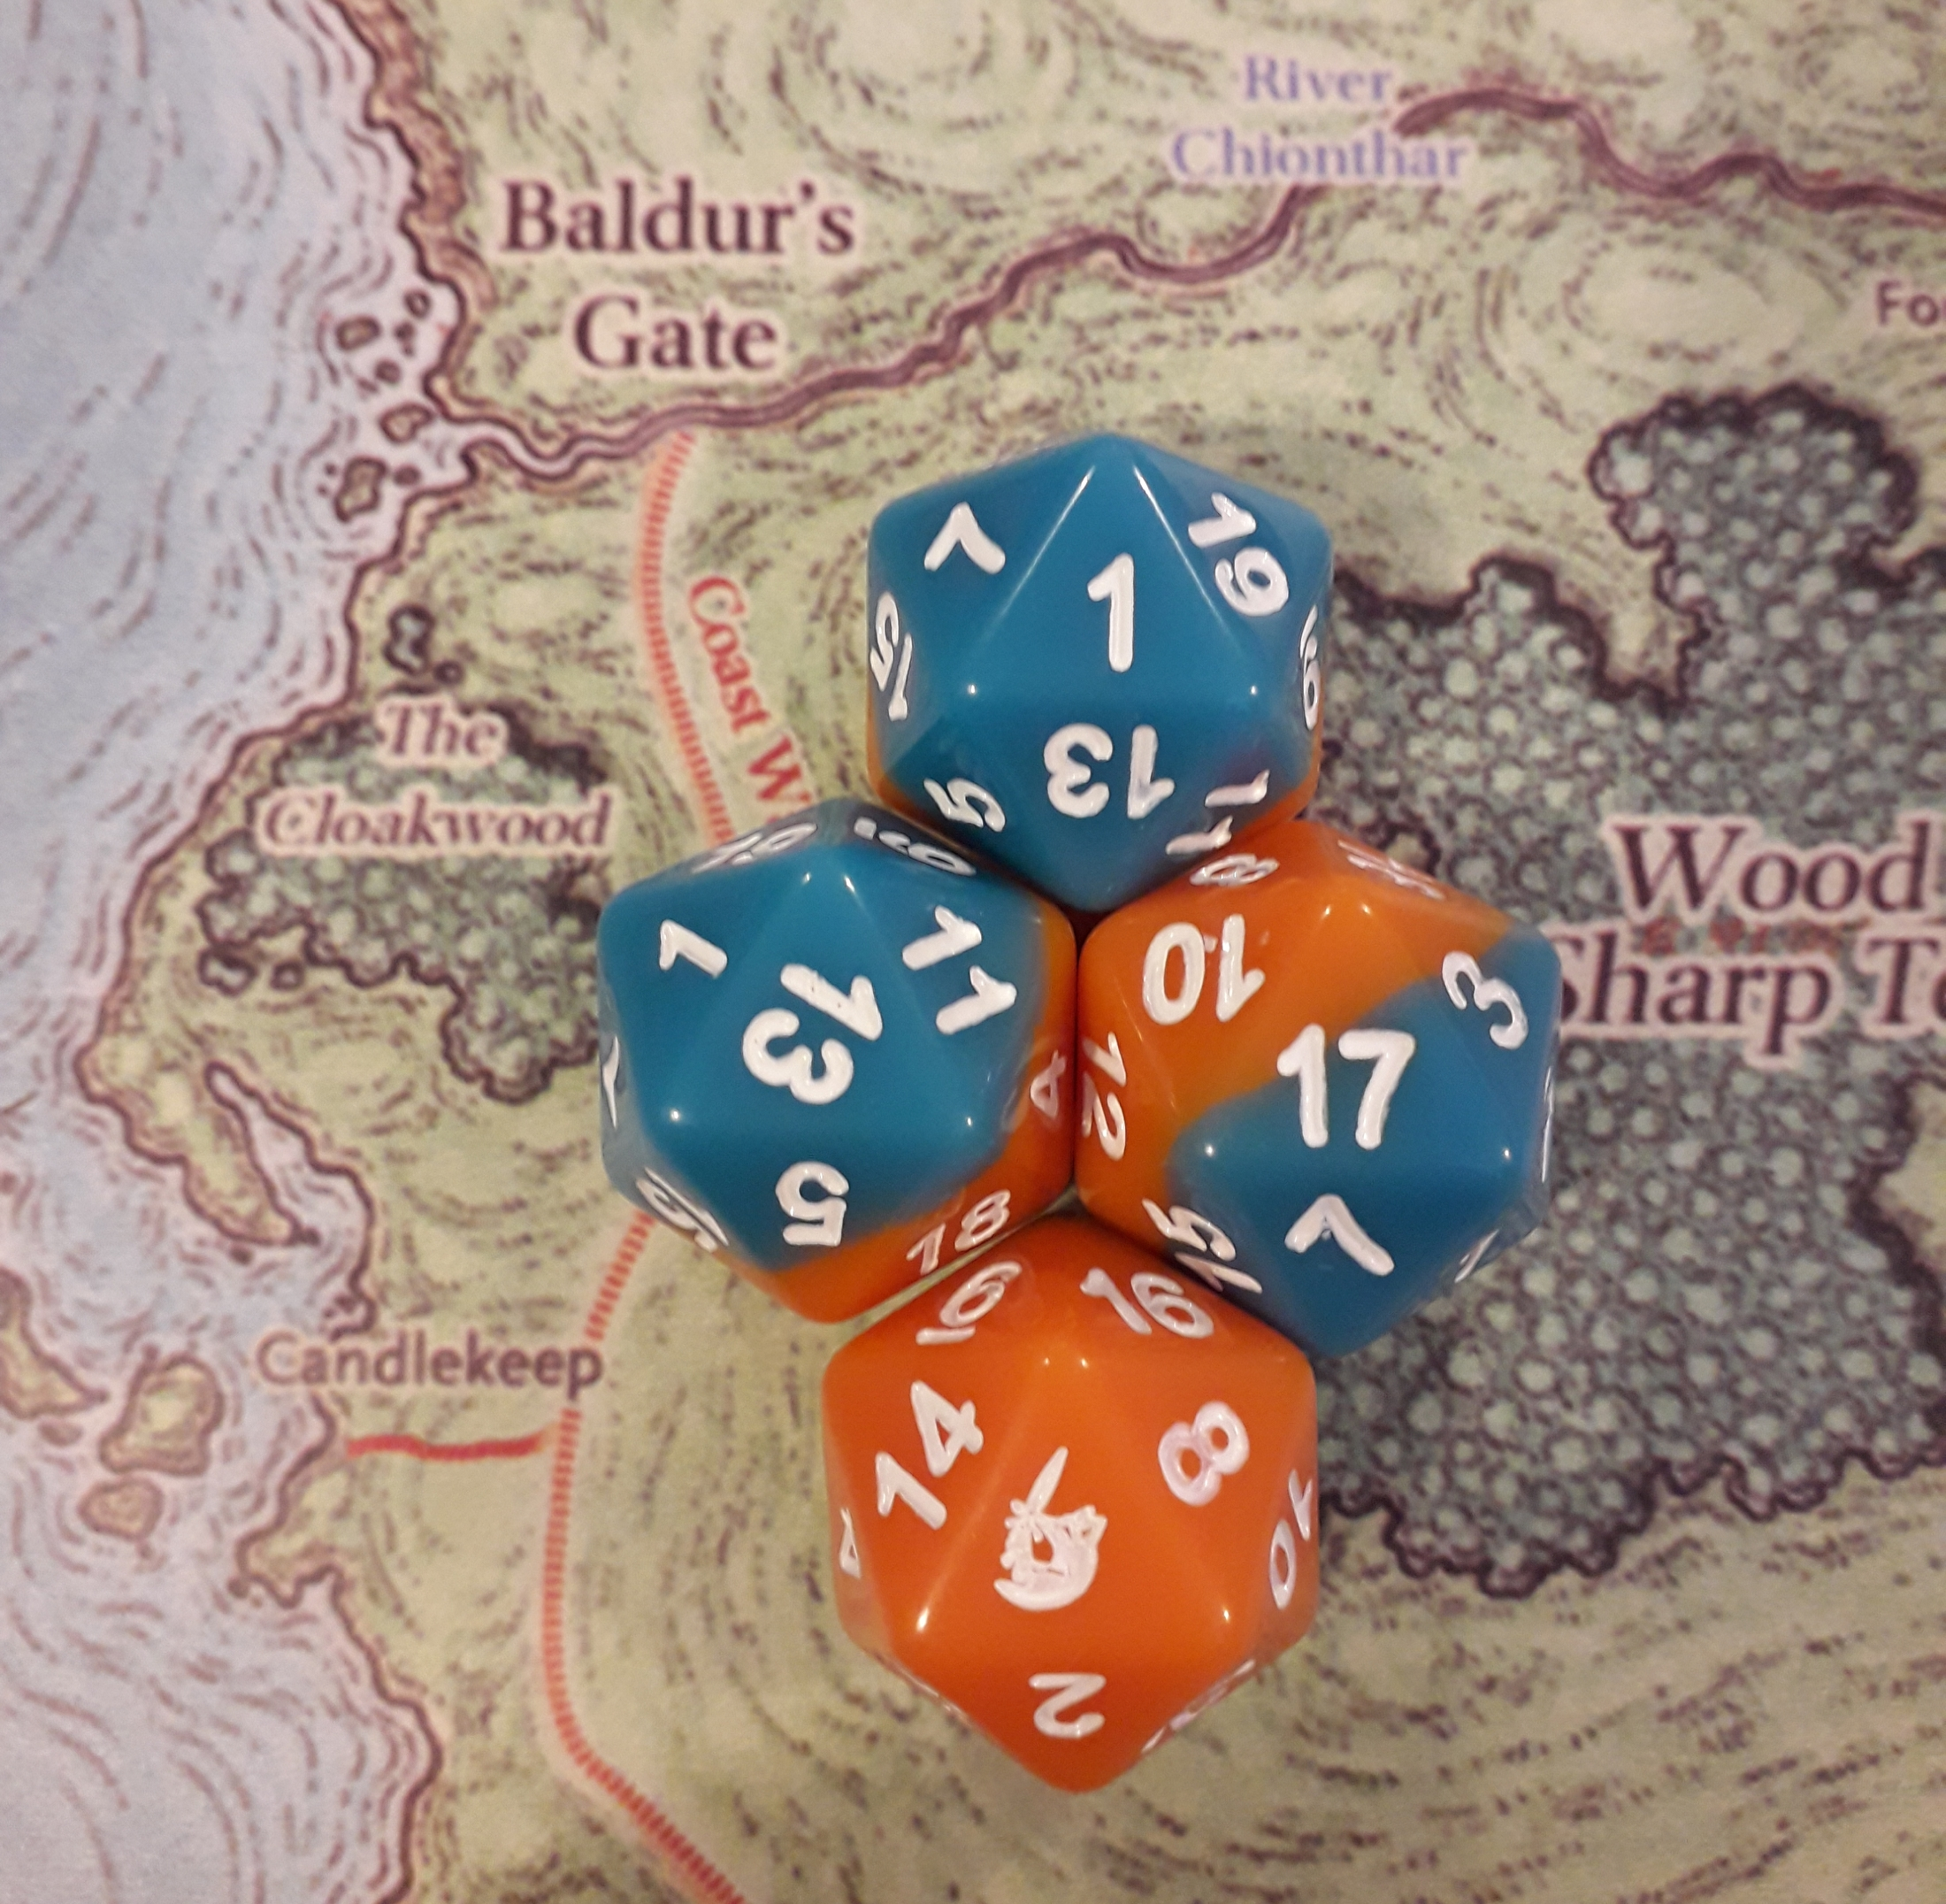 The Fantasy Realm 20 sided dice